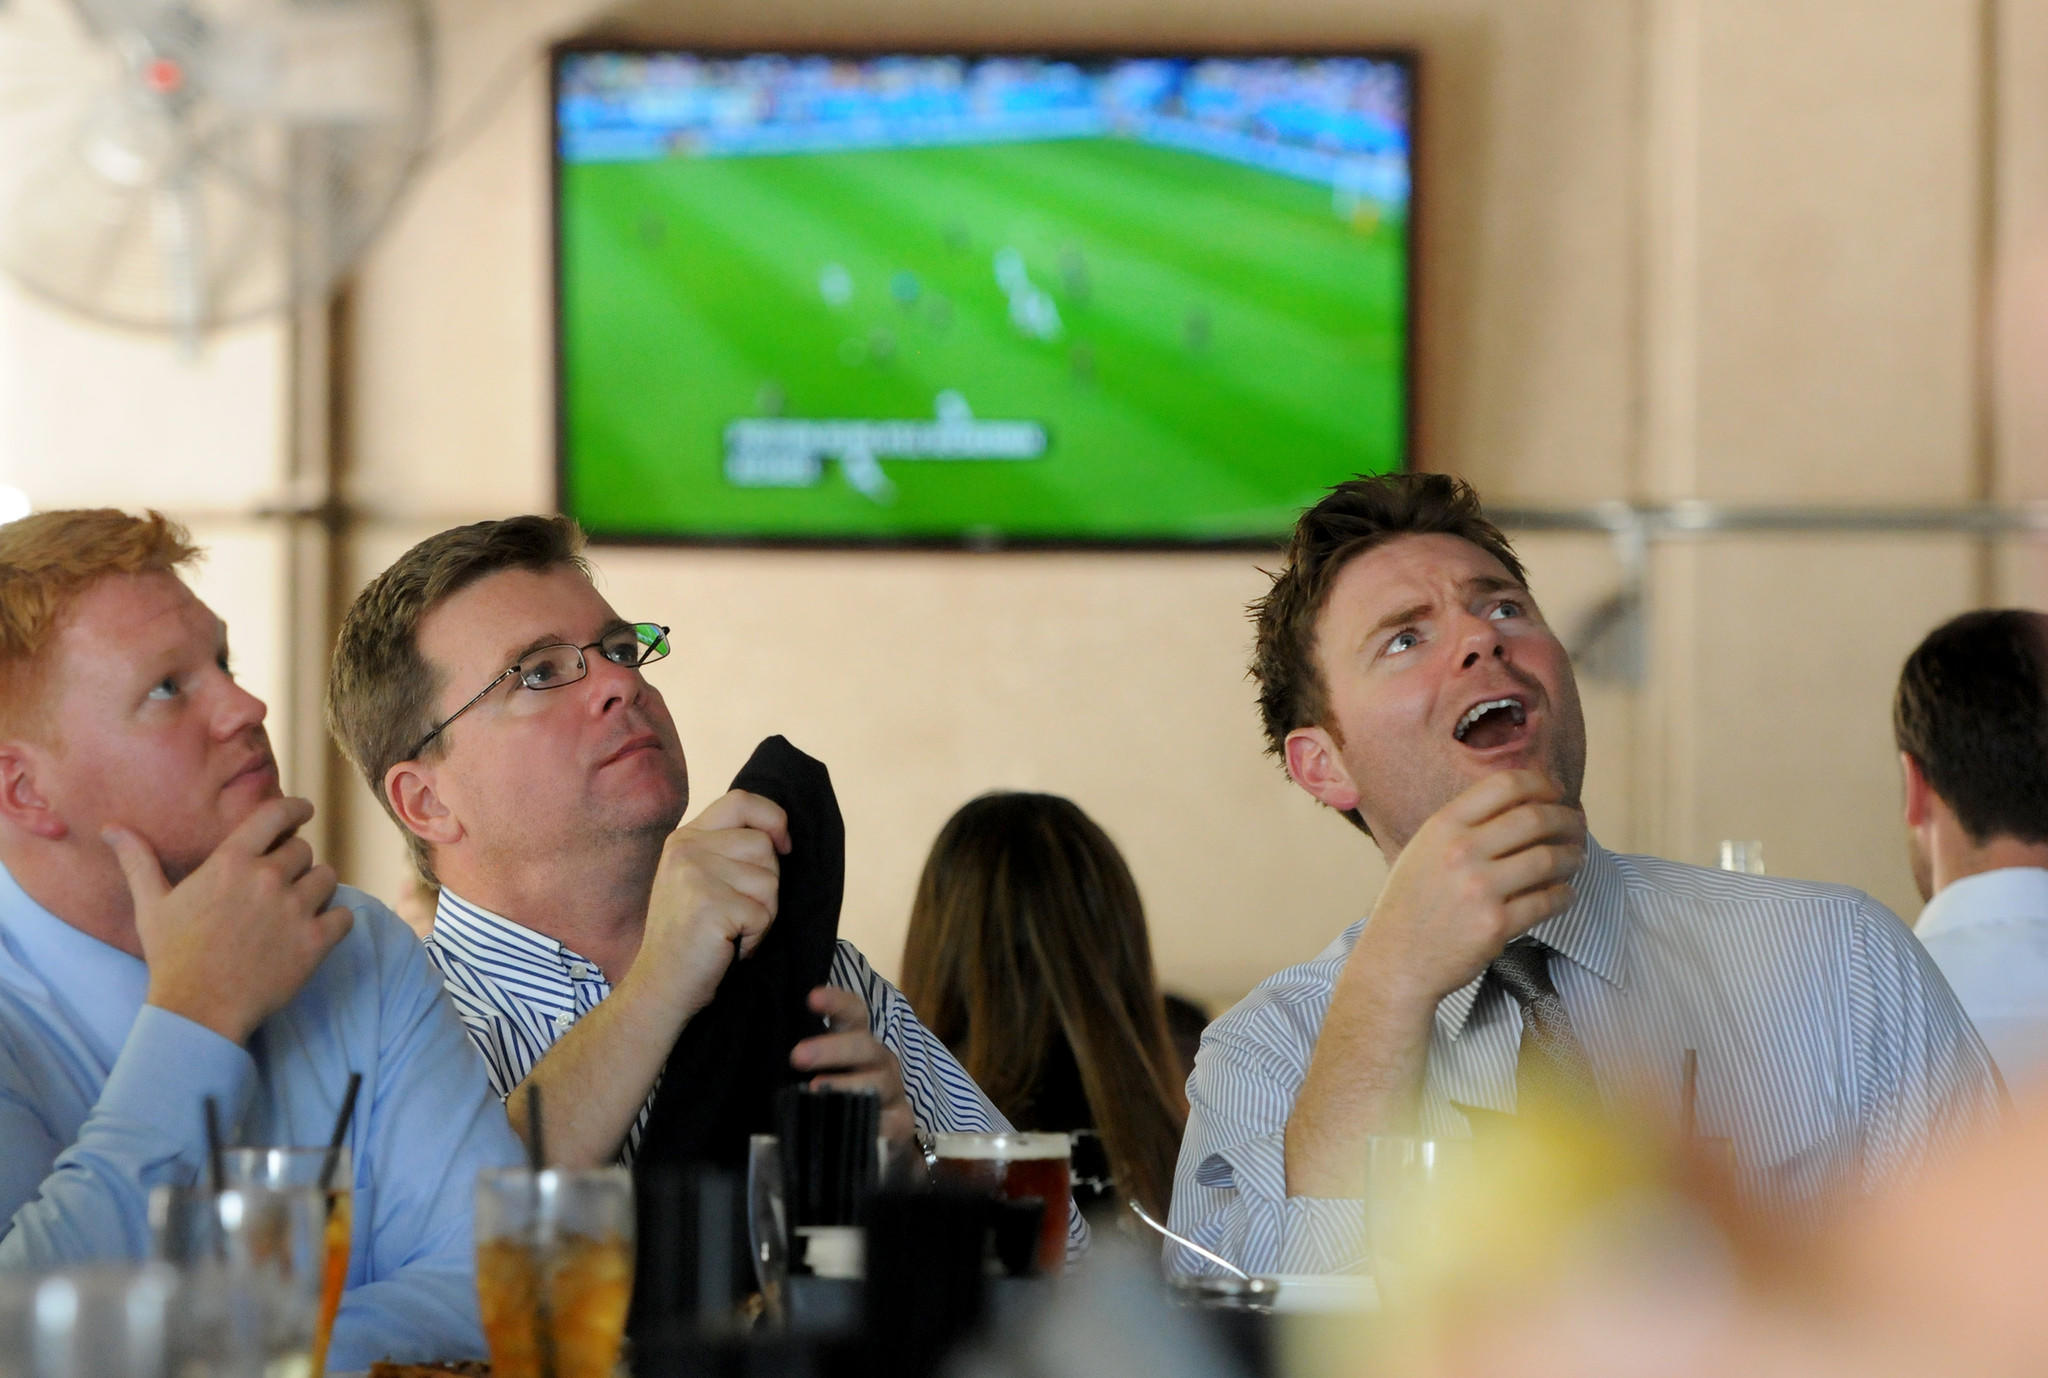 During their work lunch break, co-workers (left to right) Griffin McGuirt, Doug Griffin and Brandon Driscoll watch the US versus Germany FIFA World Cup game Thursday at the Royal Pig Pub & Kitchen on Las Olas Blvd. With over 27 televisions showing the US vs. Germany game, the Royal Pig was packed with employees from businesses surrounding the pub. Taimy Alvarez, Sun Sentinel